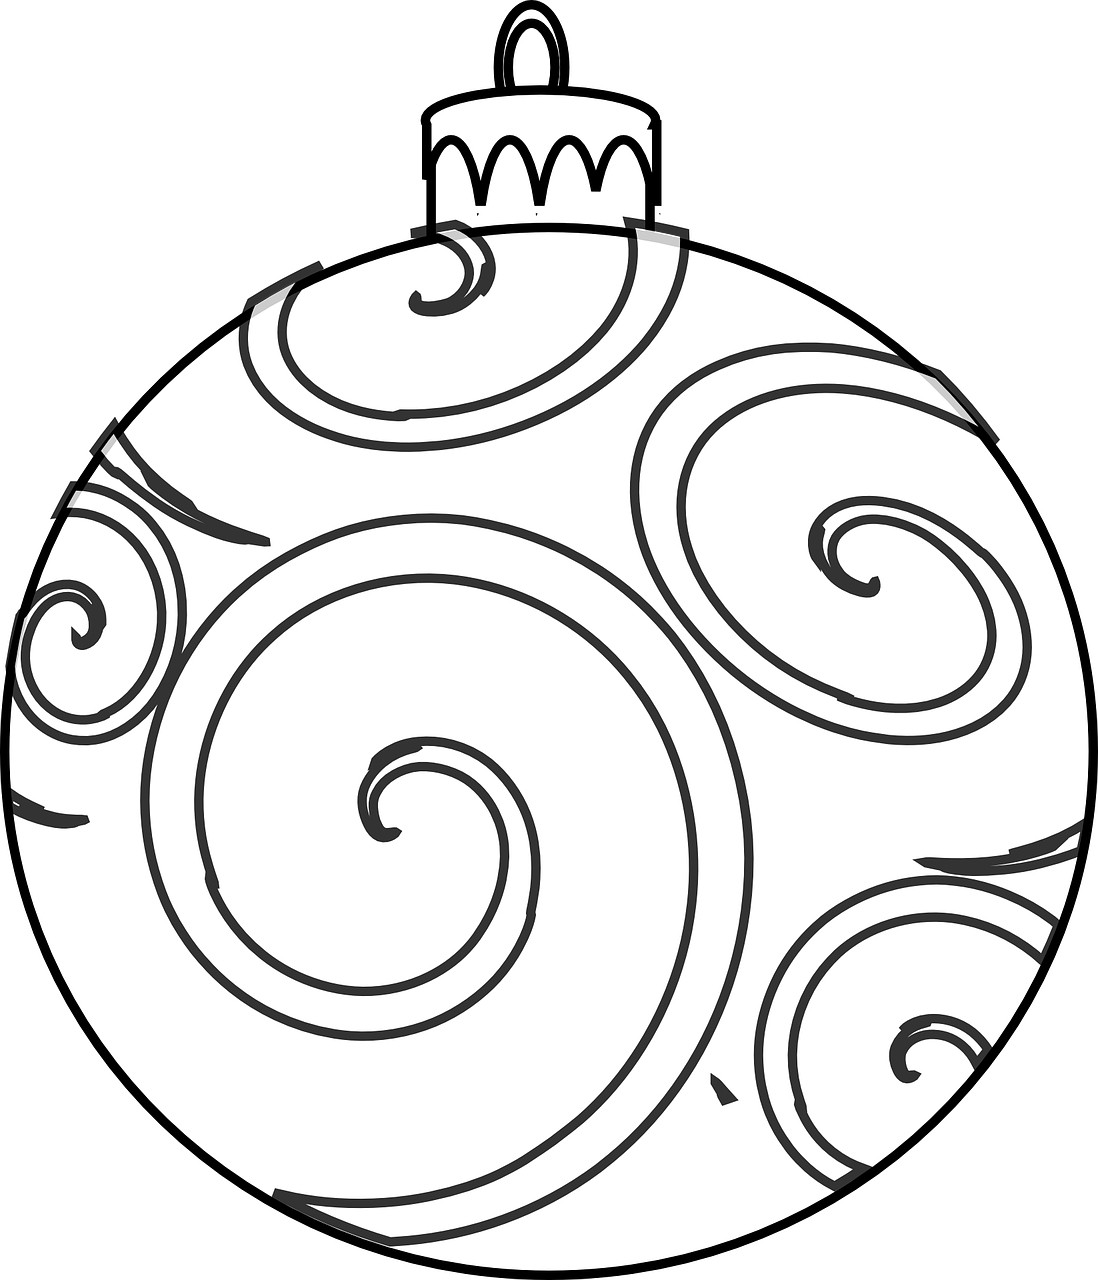 1098x1280 Christmas Ornaments Coloring Pages To Print Go Digital With Us